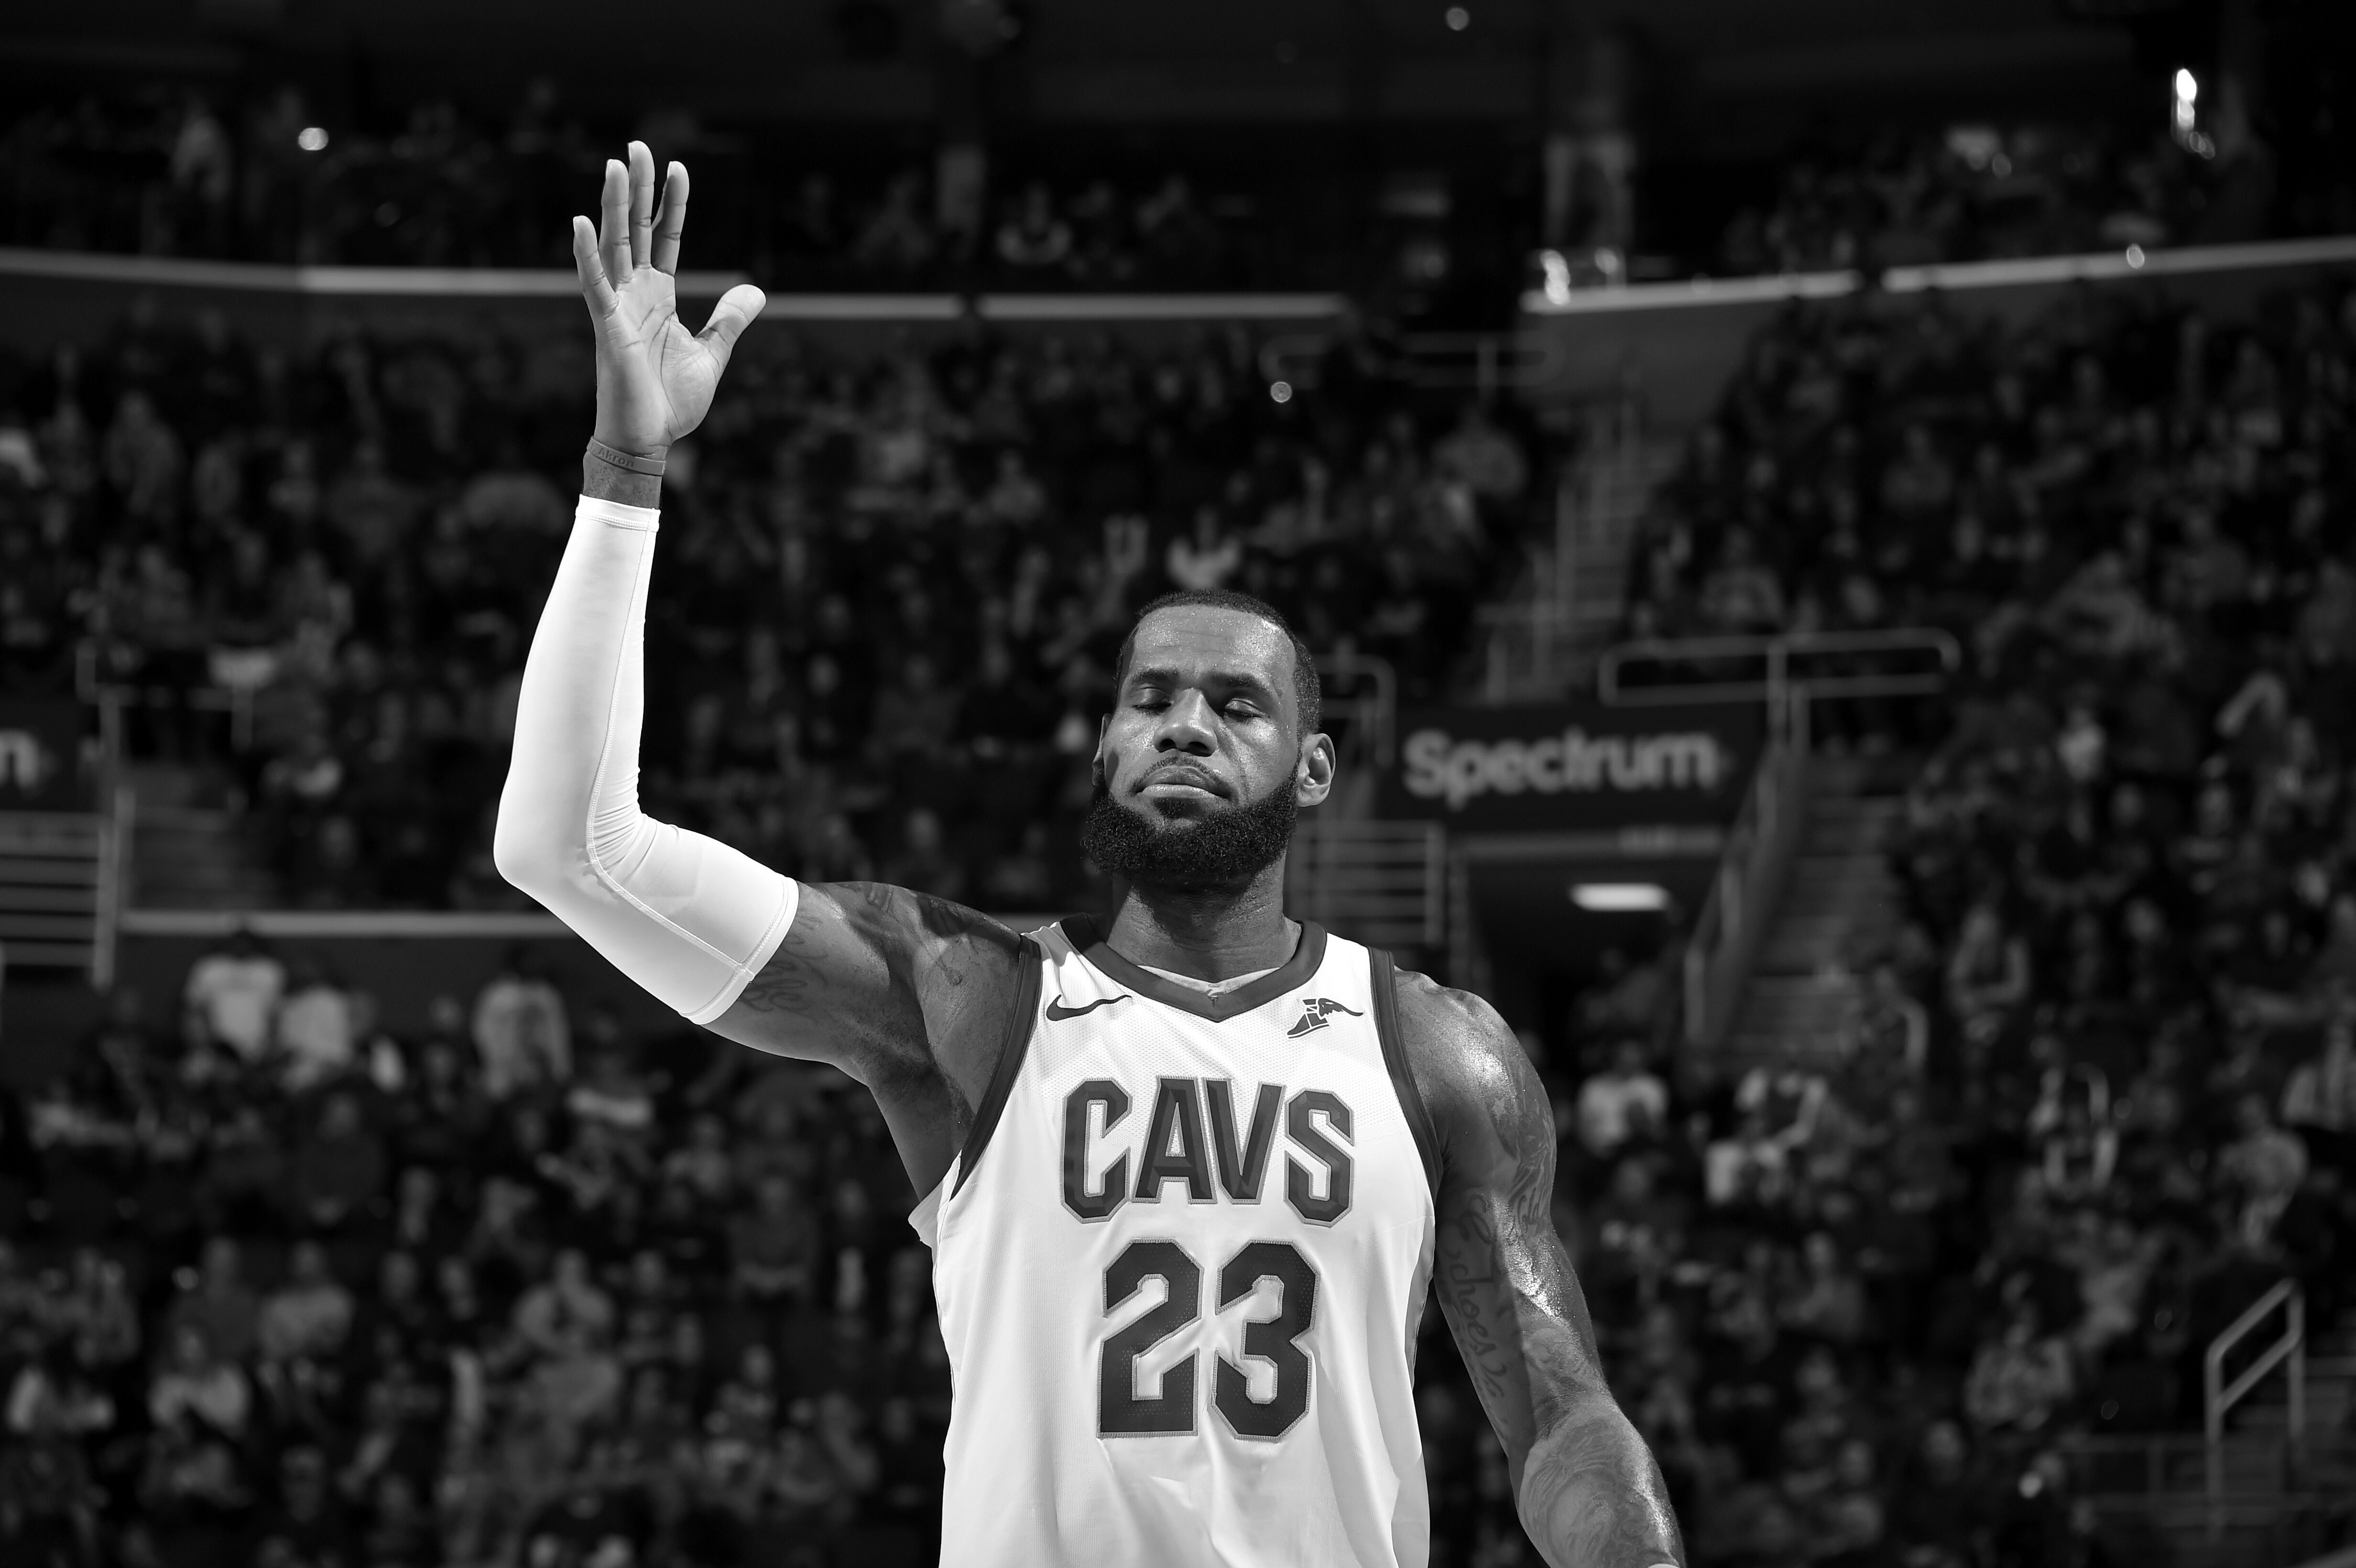 For the Cavaliers to get better, LeBron James must commit to